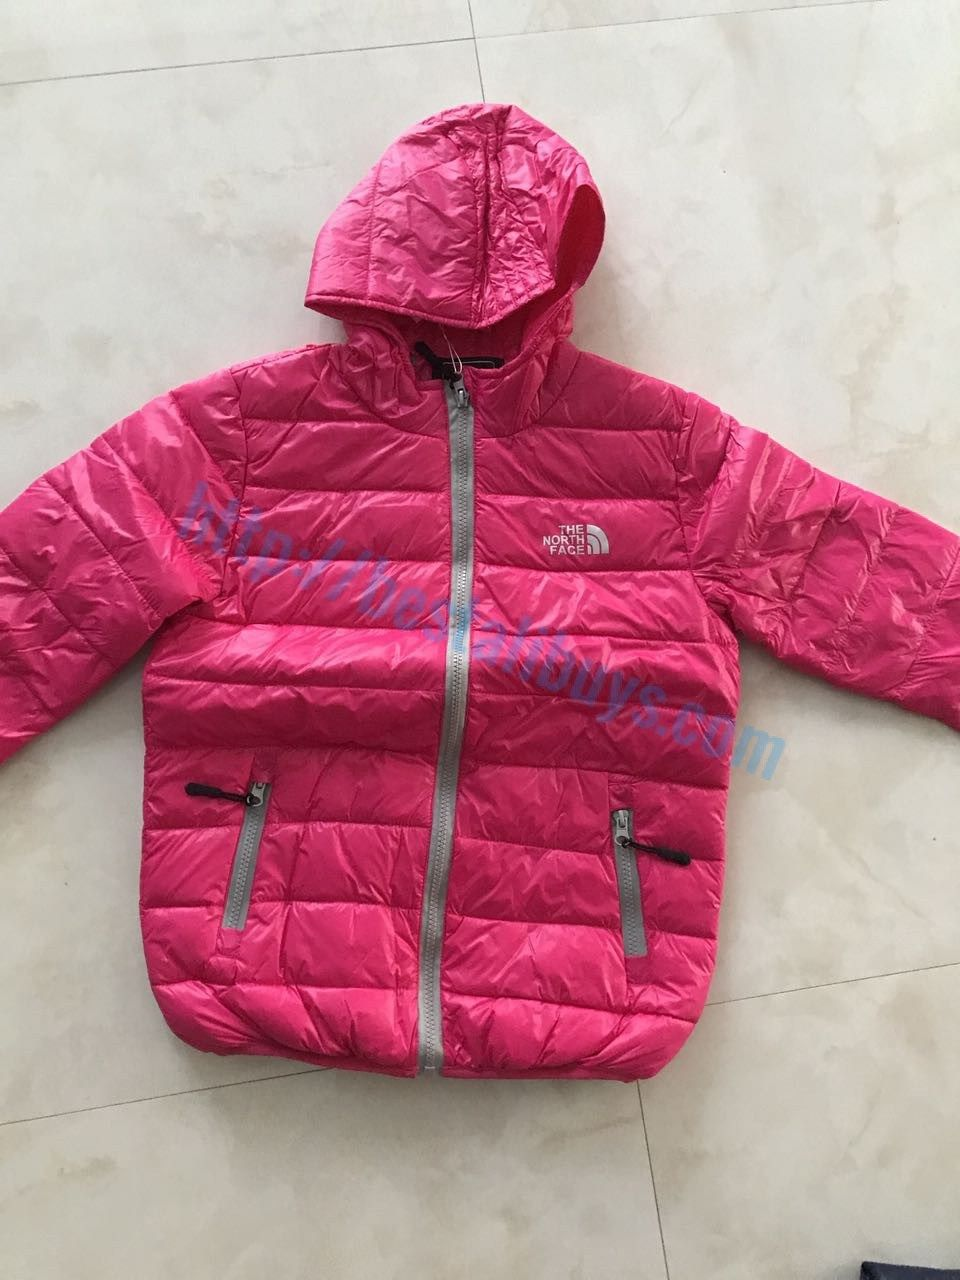 64f37d4258b North Face Jacket Kids on Aliexpress - Hidden Link   Price      FREE  Shipping     aliexpressbrand